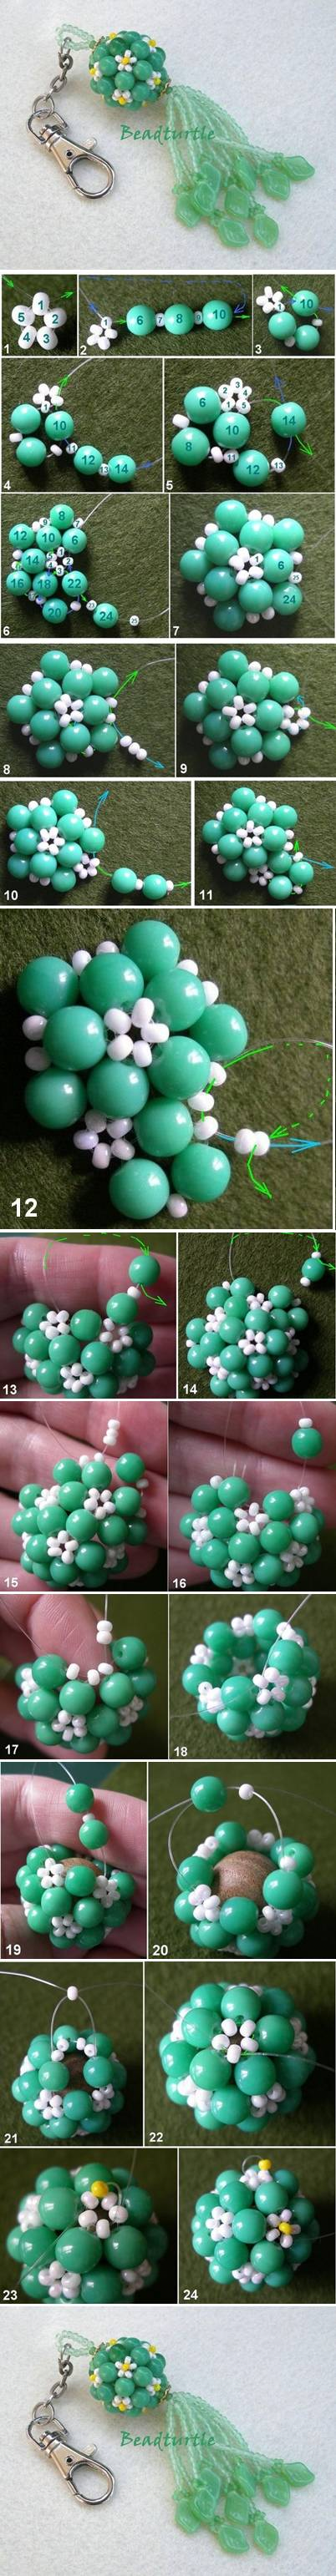 How to Make Key Chain Beads Charm step by step DIY tutorial instructions